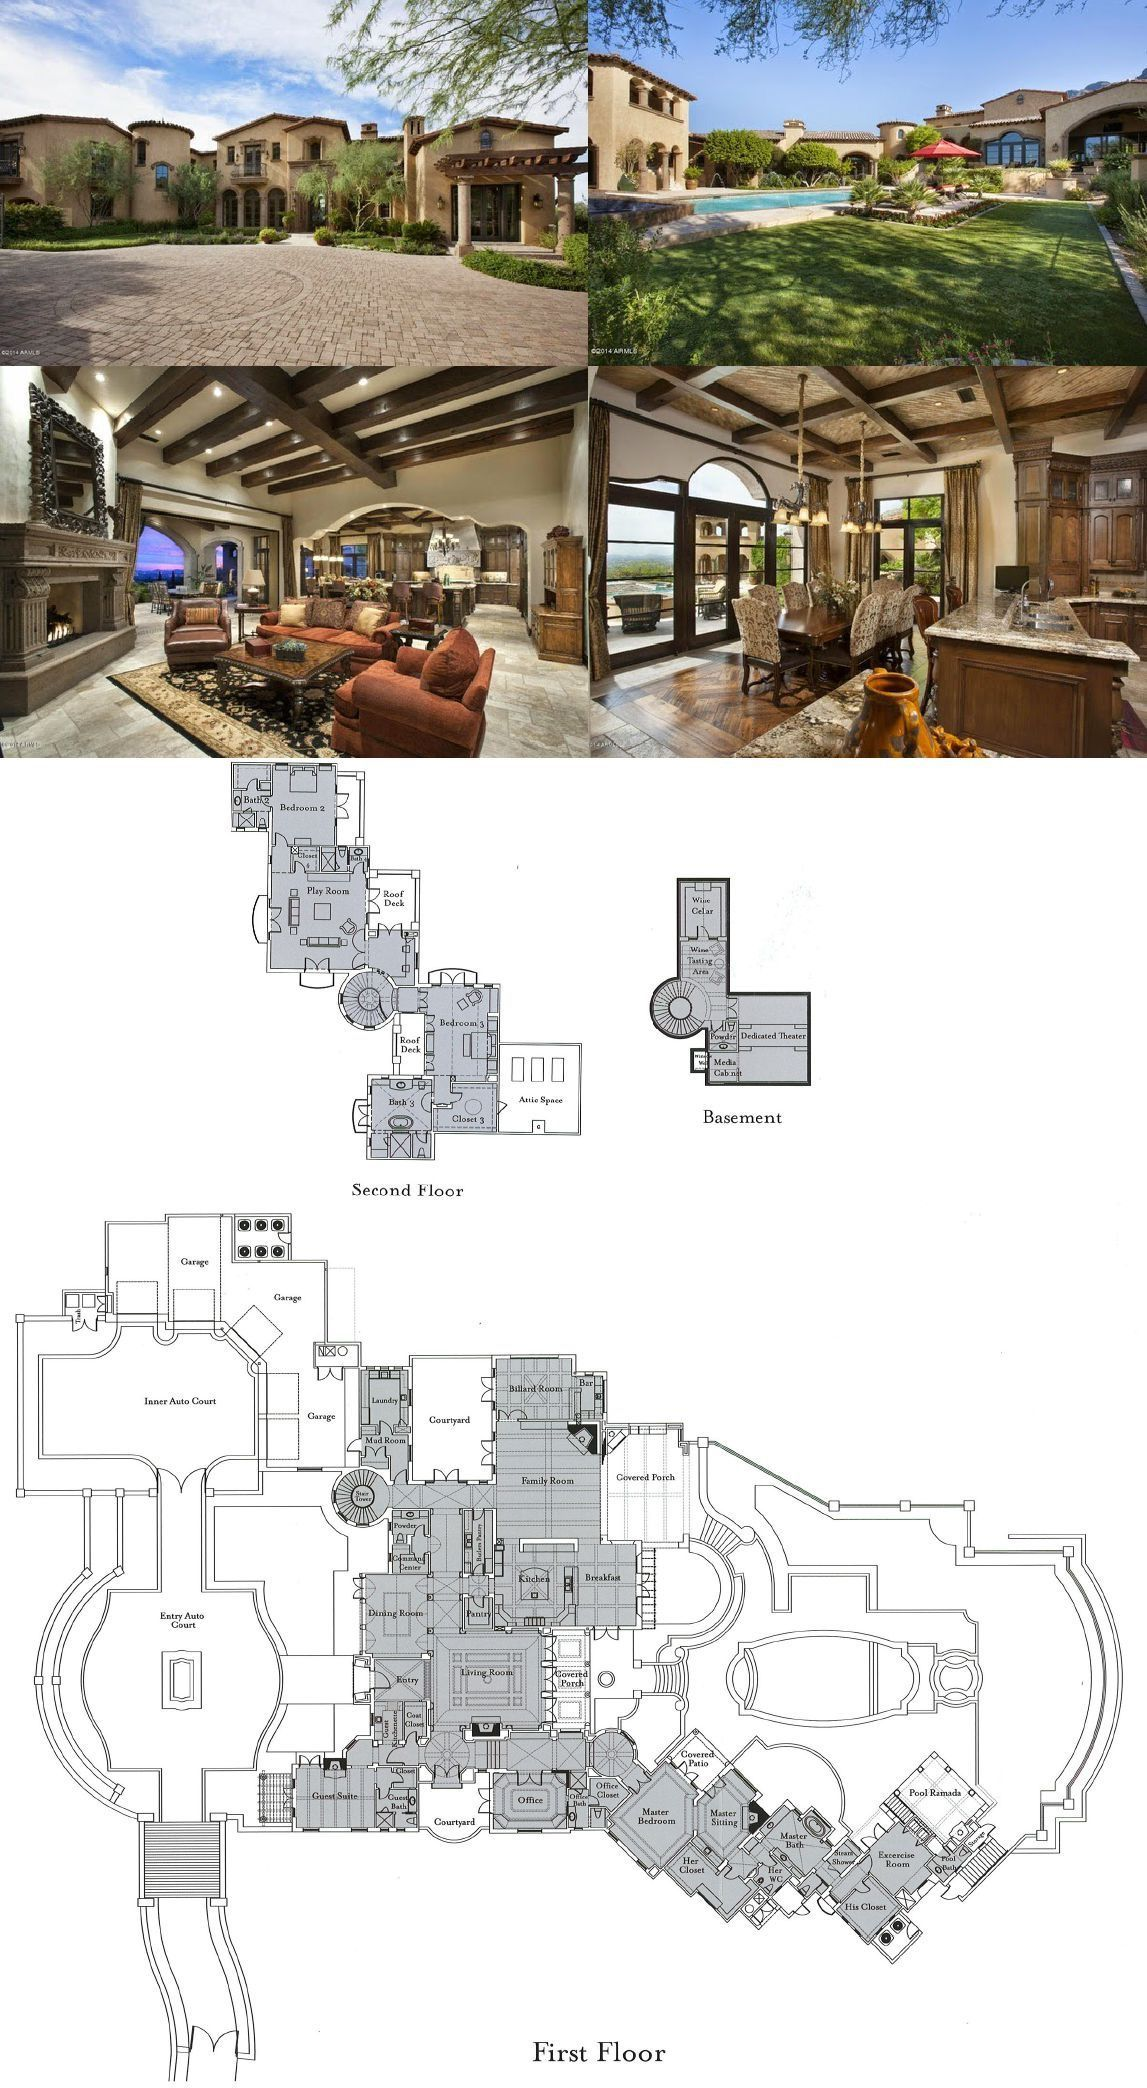 Spanish Colonial Estate For Sale In Scottsdale Az For 8 250 000 Model House Plan Mansion Floor Plan House Layout Plans